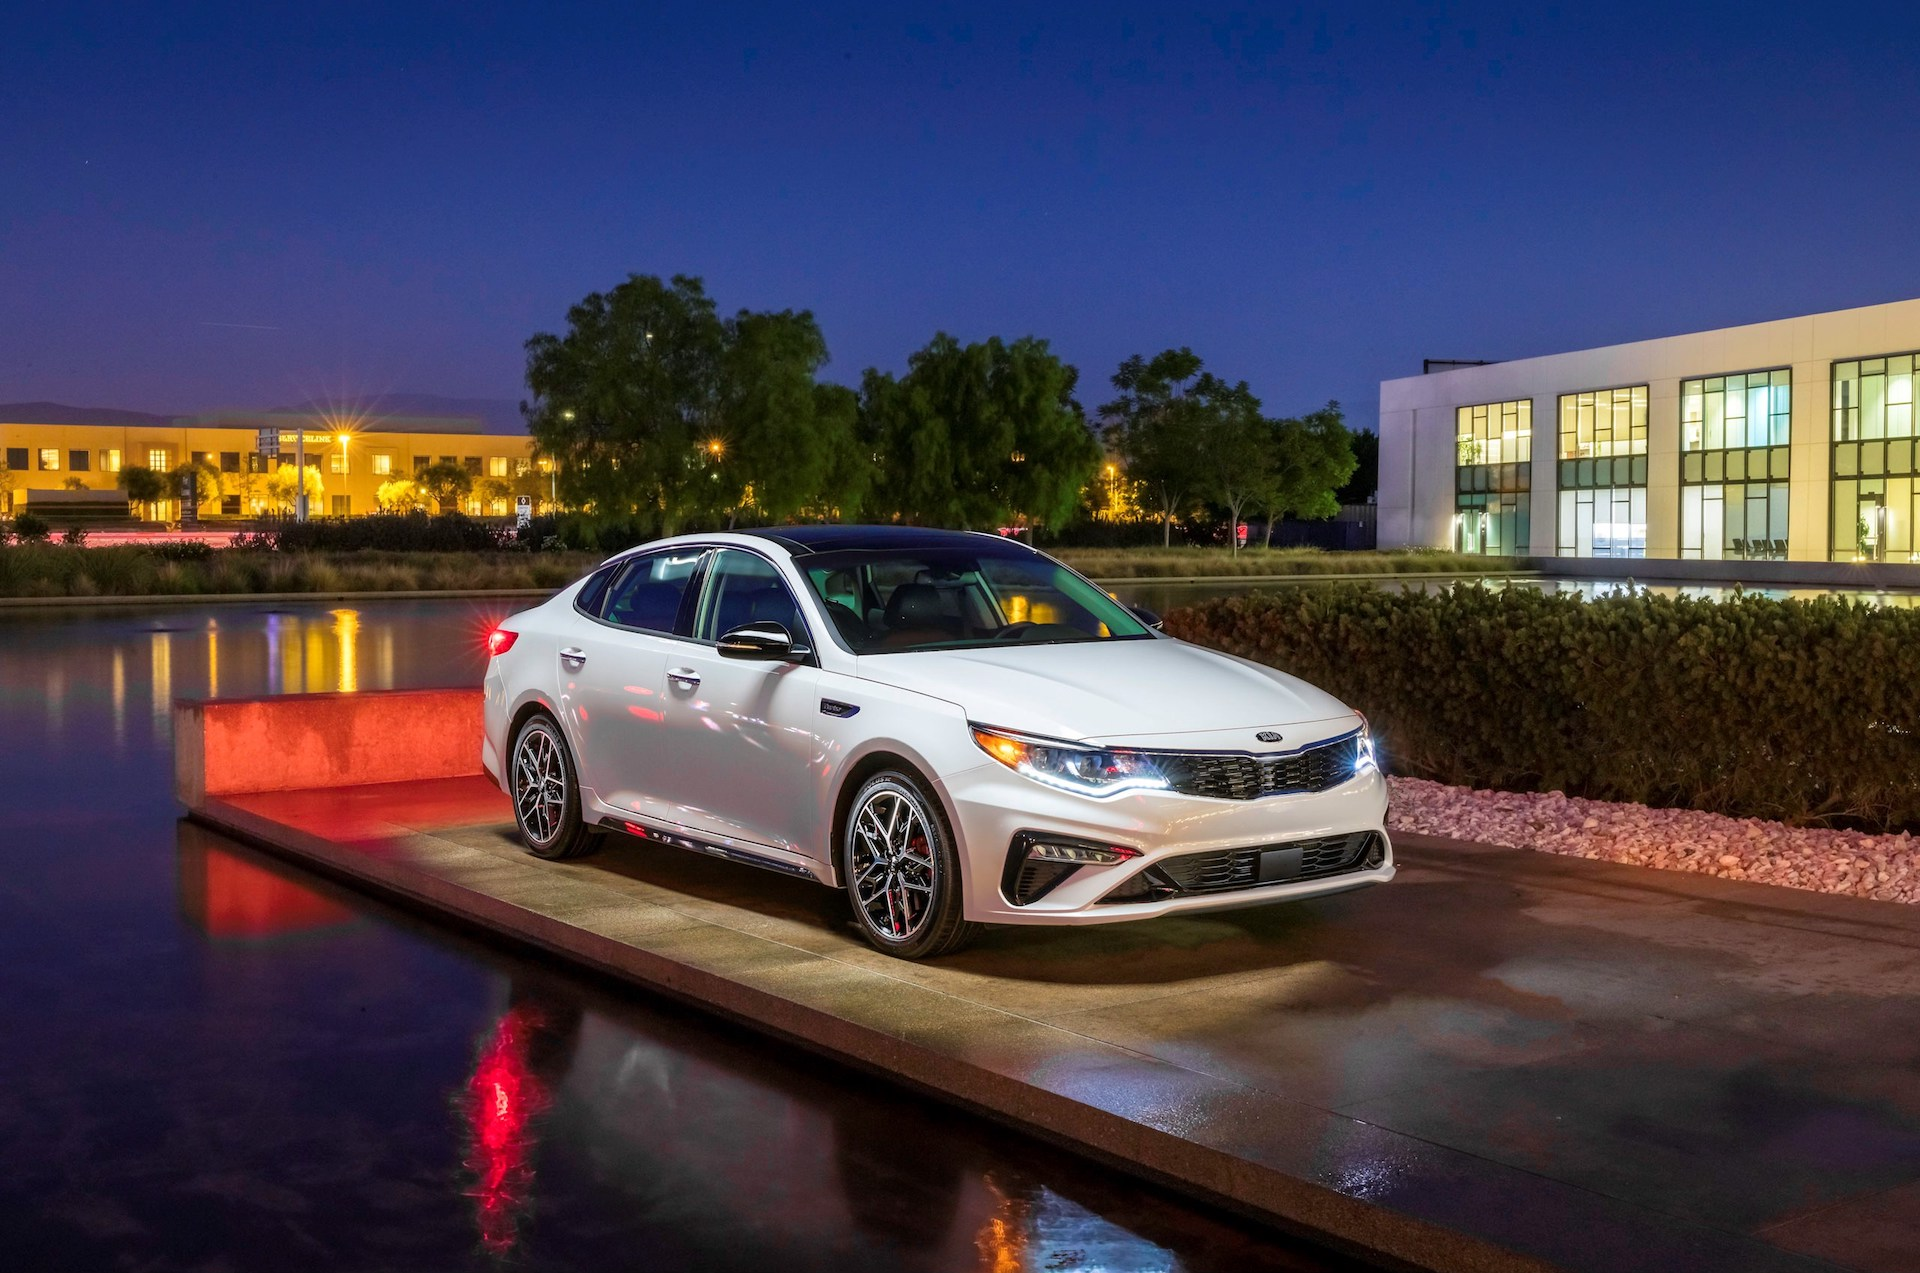 2019 Kia Optima Review, Ratings, Specs, Prices, and Photos